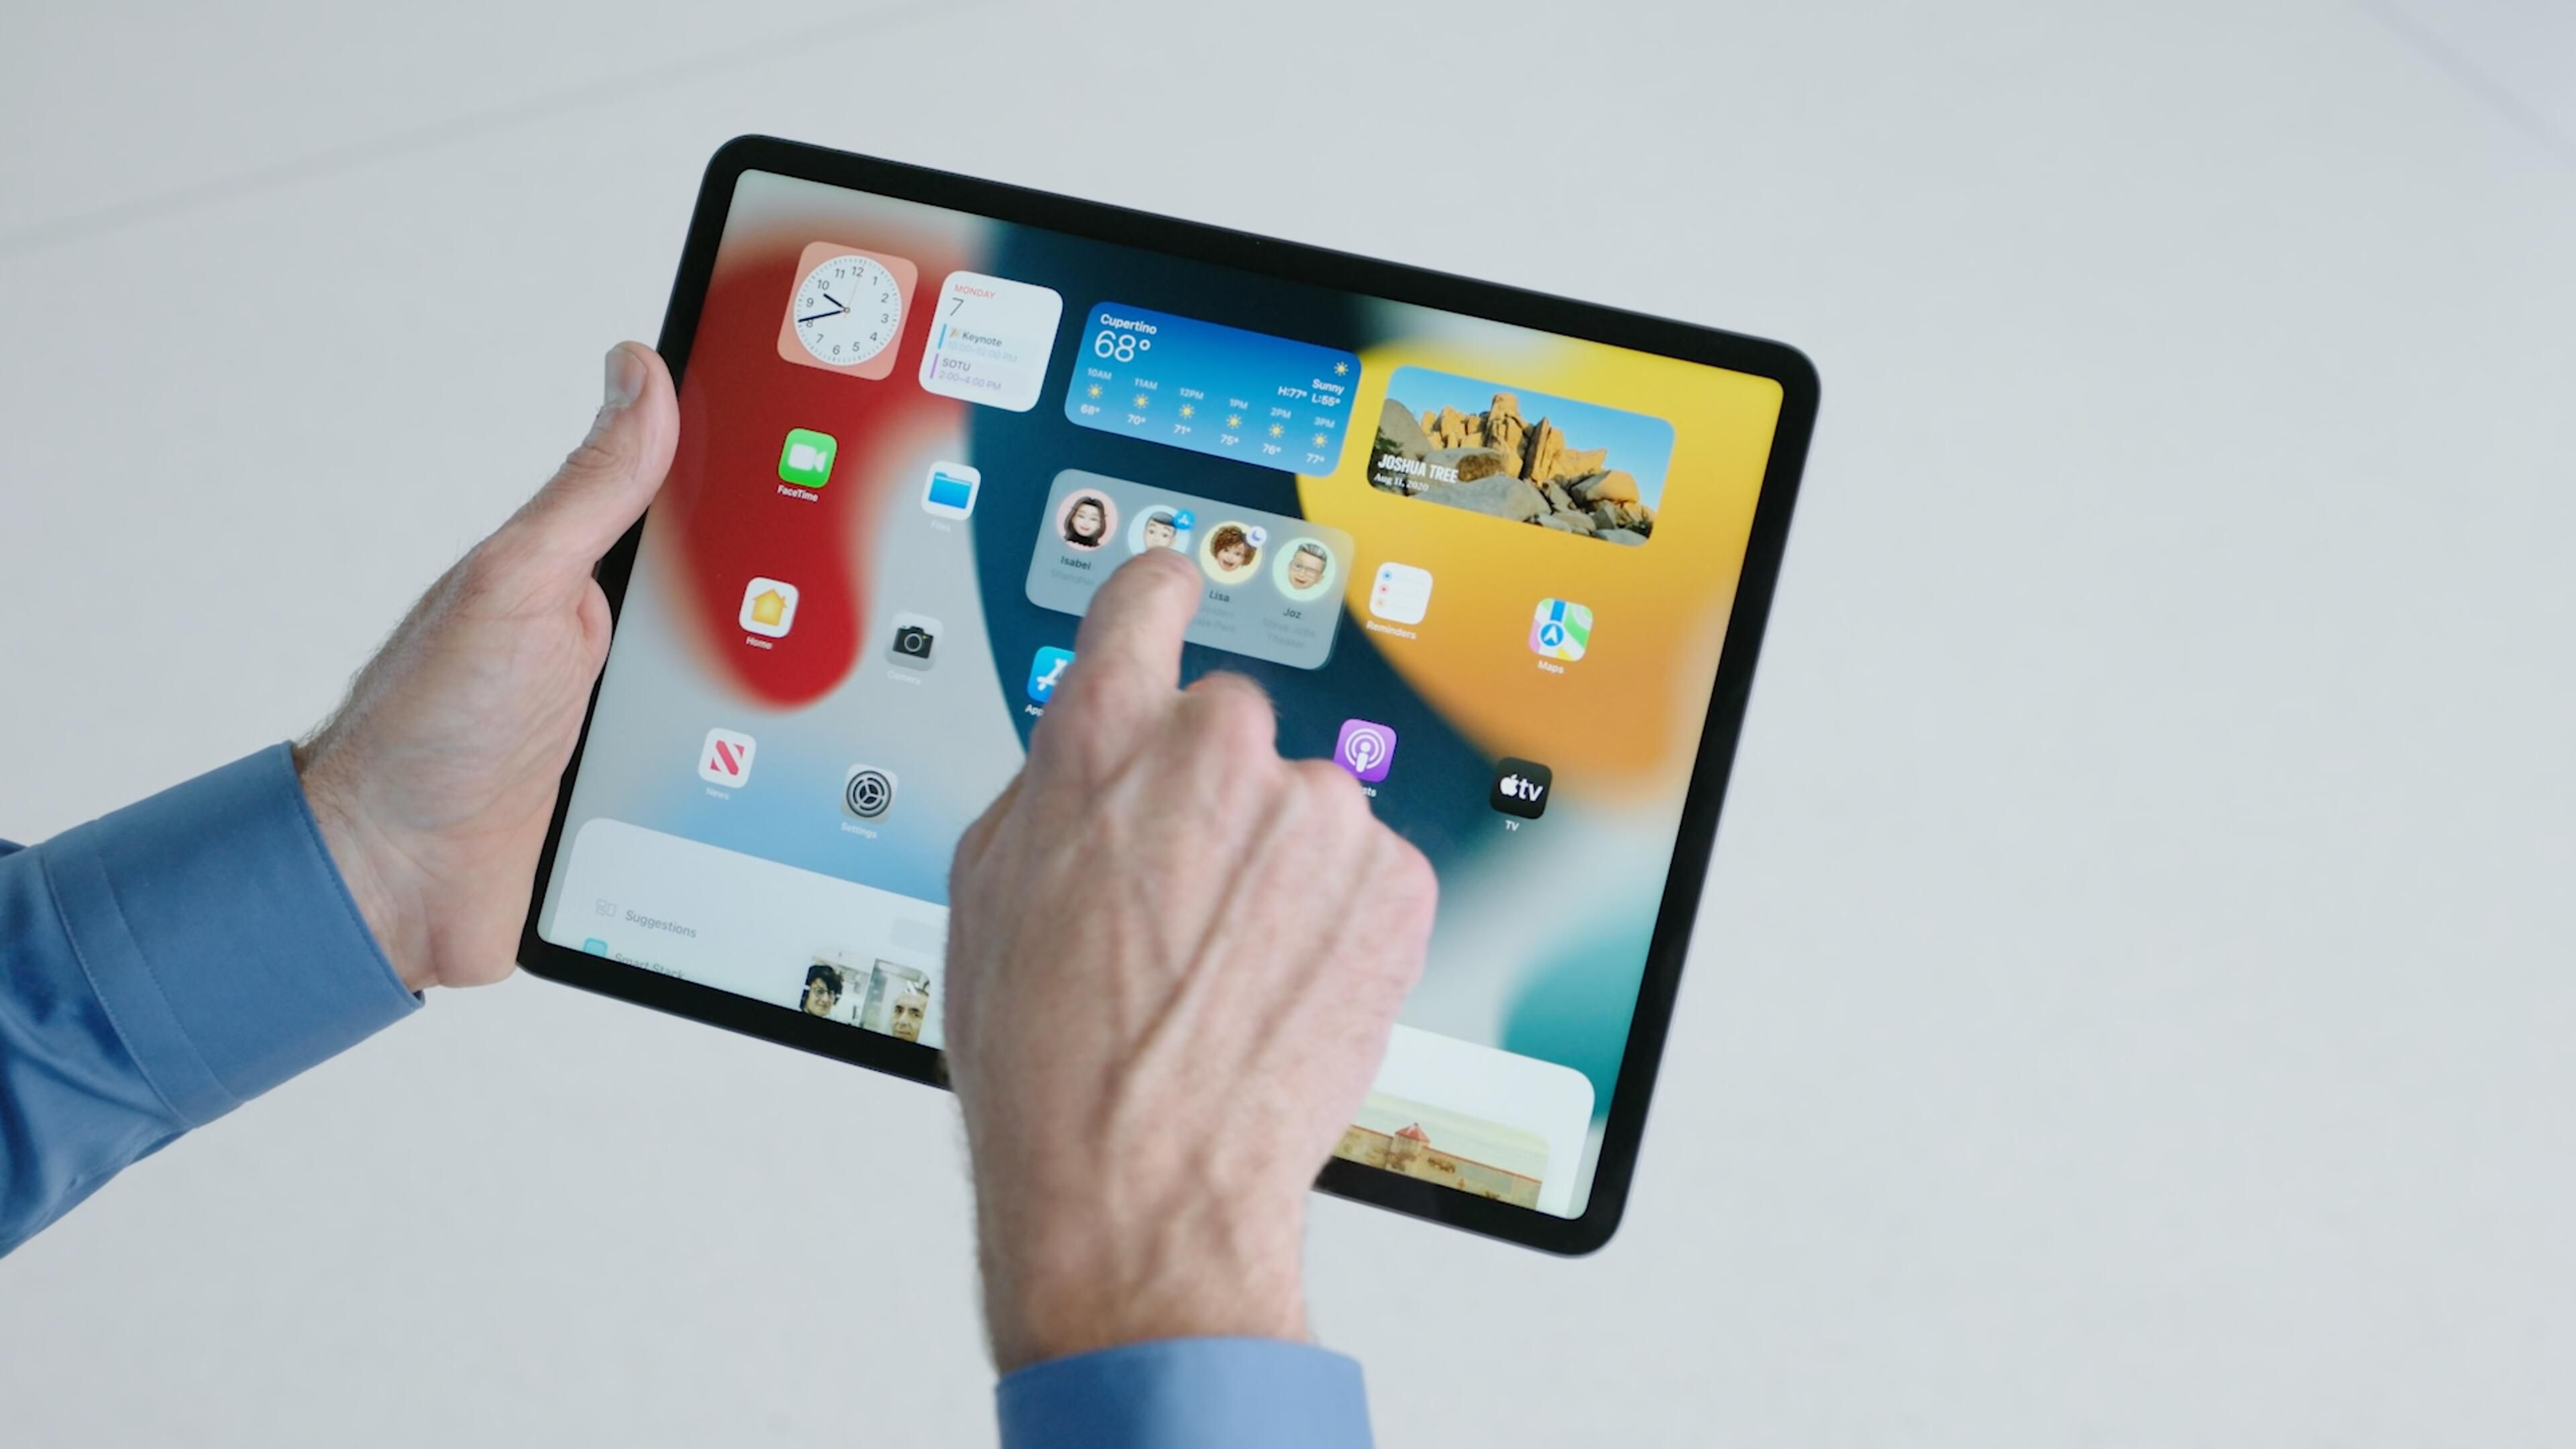 Putting in iOS 15 beta on Apple iphone or iPad? 3 causes you might want to wait around